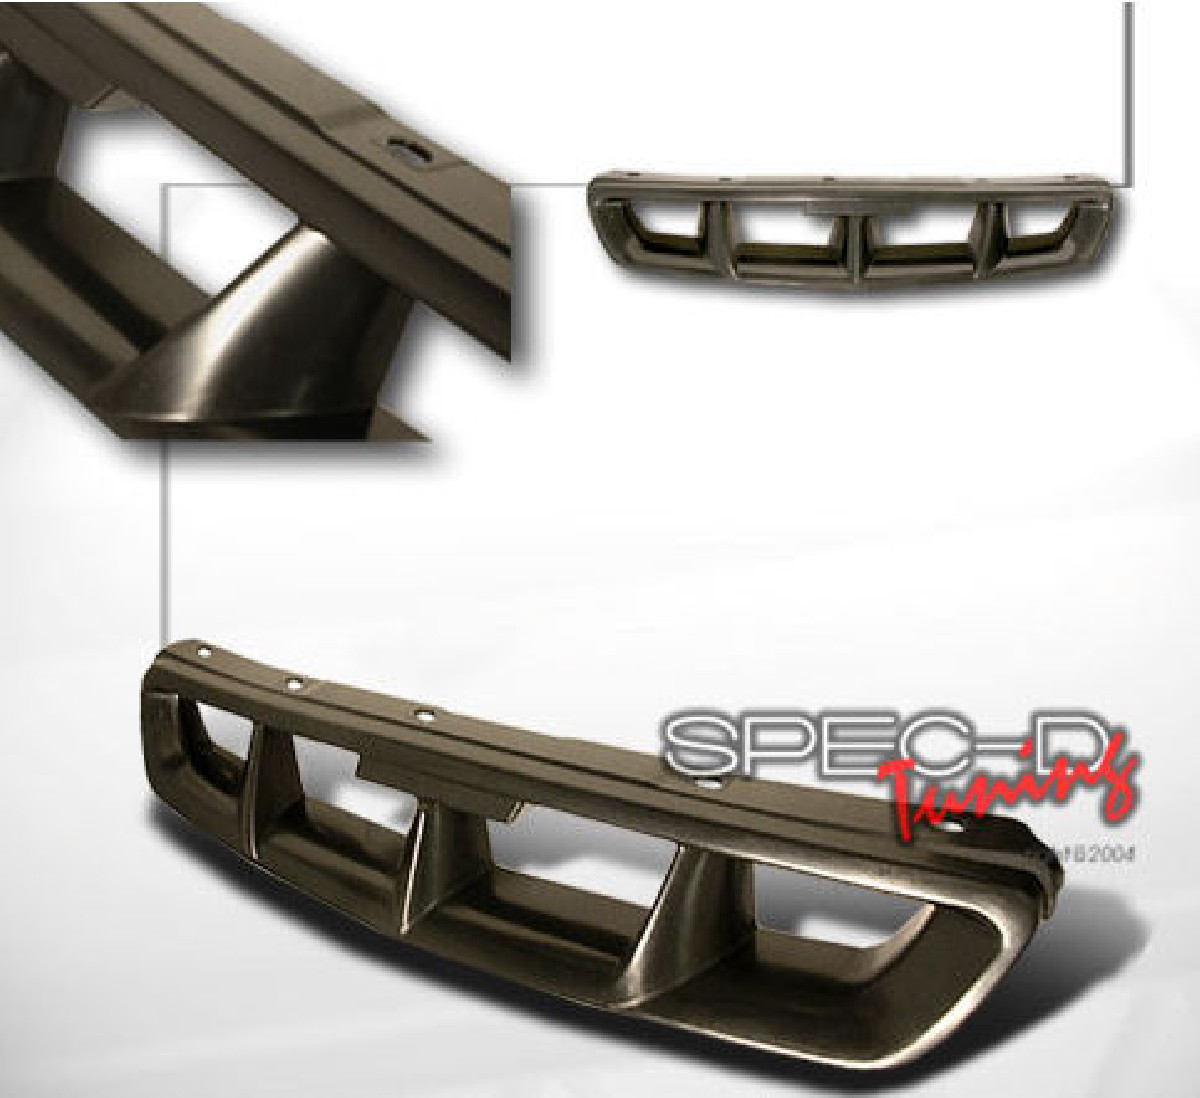 Honda Civic 99-00 Mugen Look ABS Grill